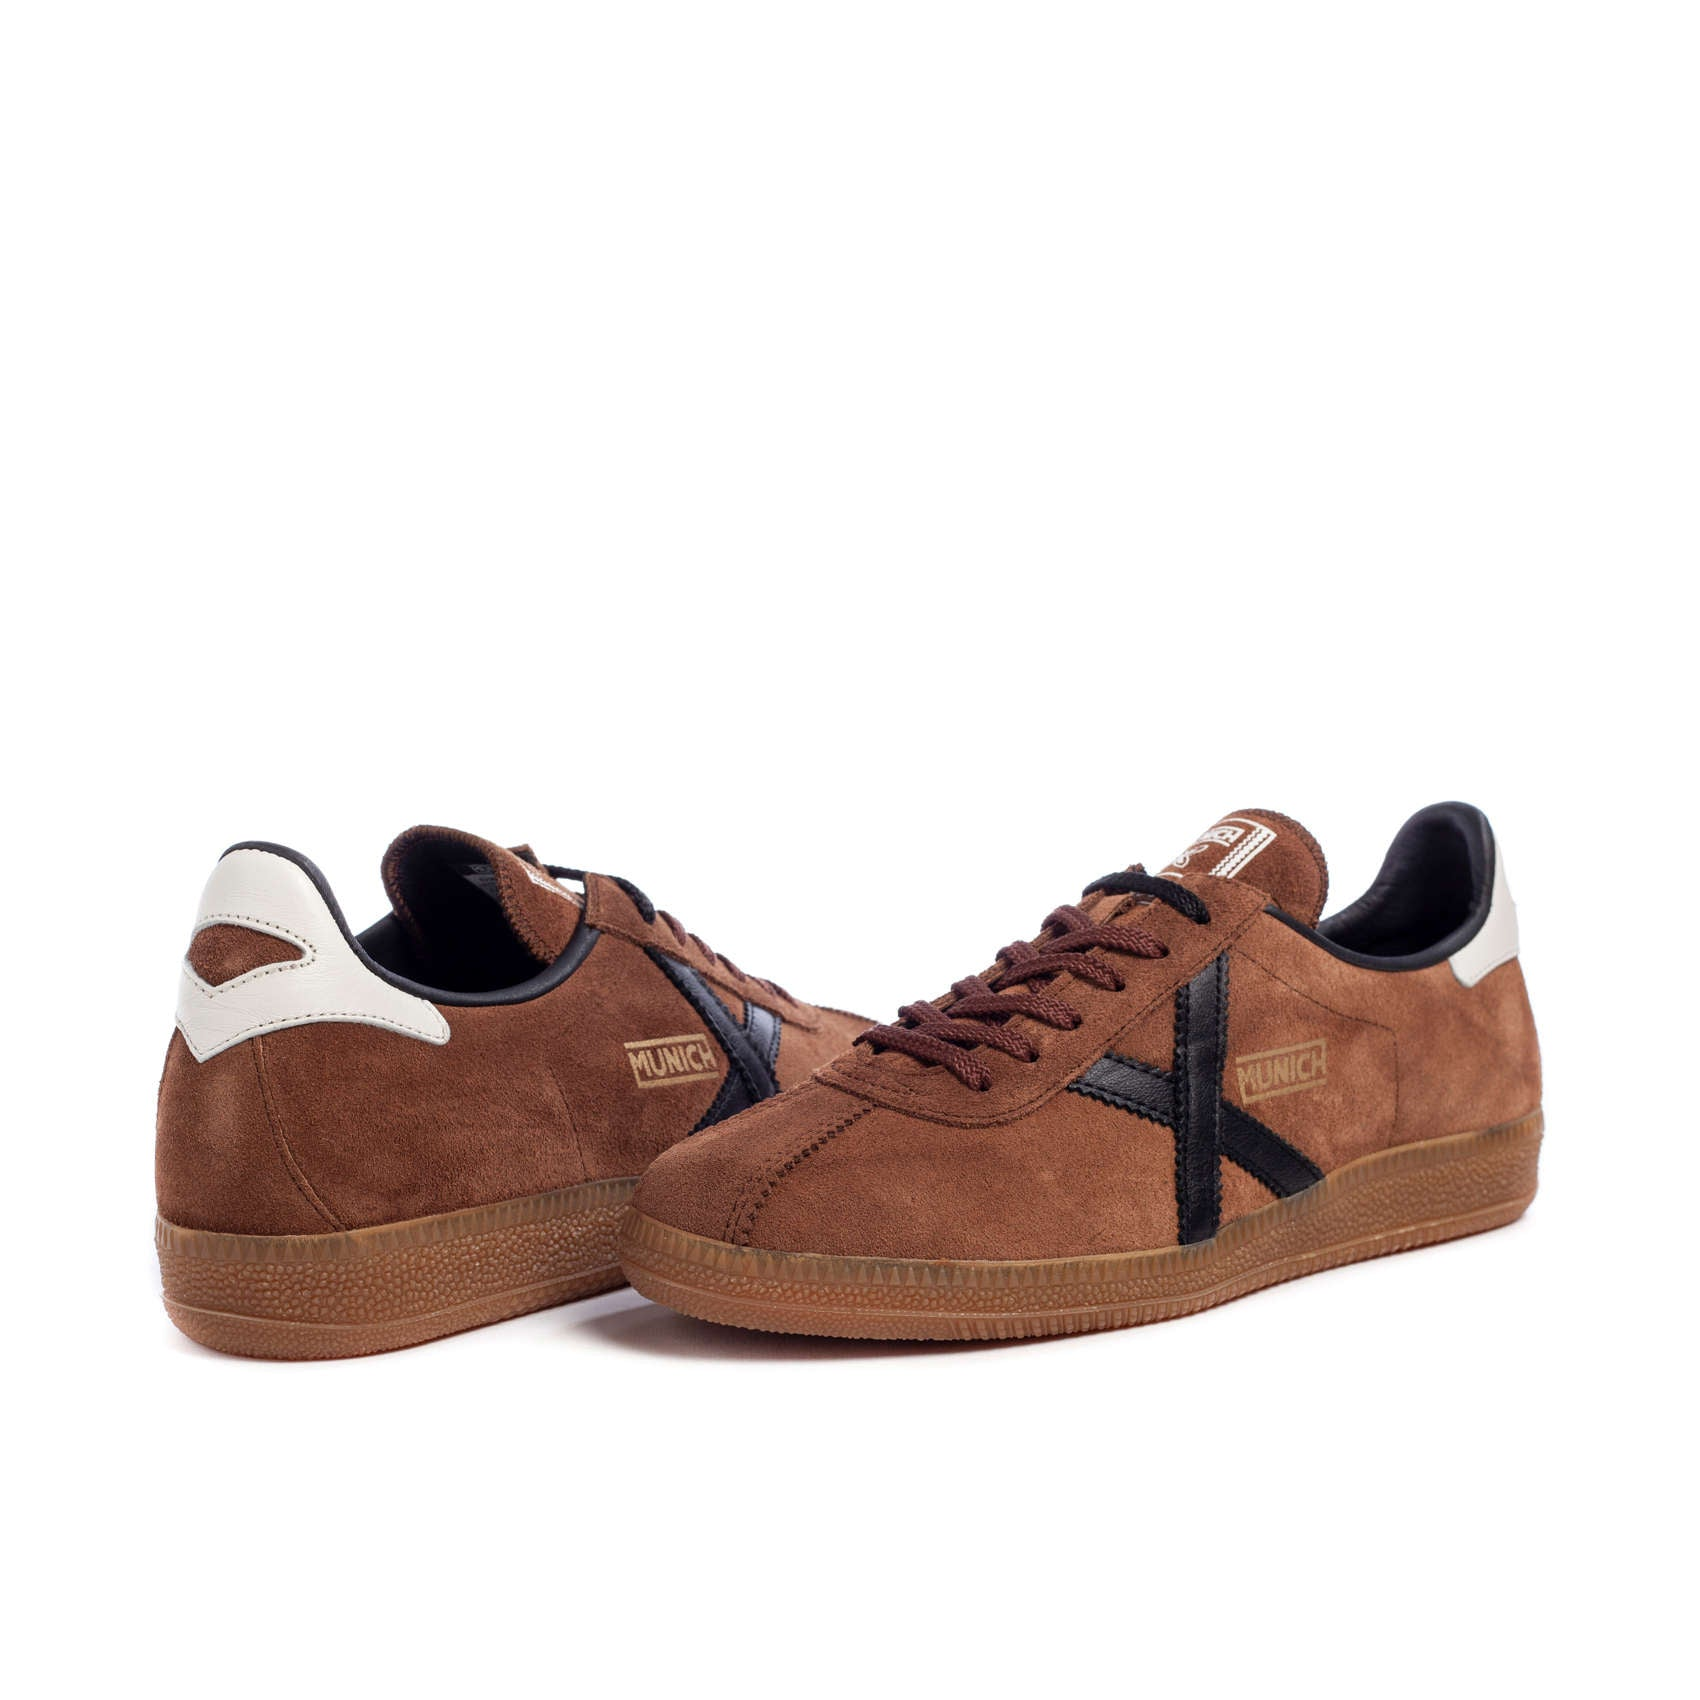 ID20174-Munich Trainer Barru-Brown Suede